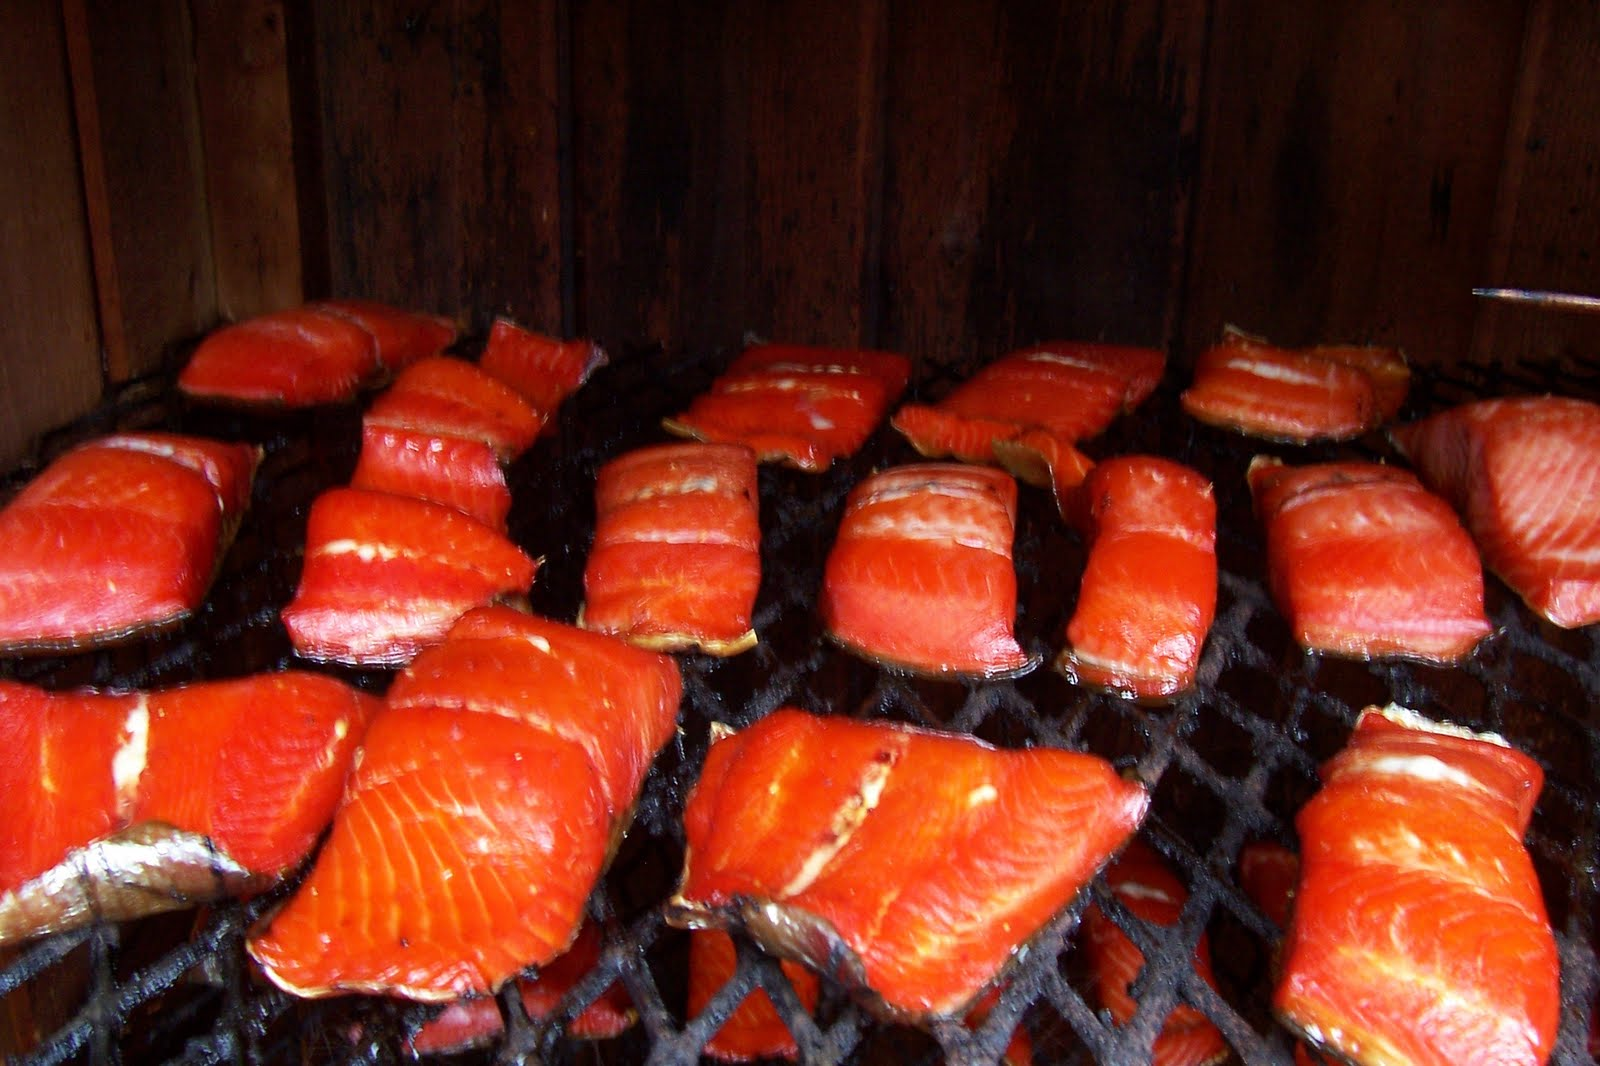 Beaver creek cabins guide service how to smoke salmon for How to smoke fish